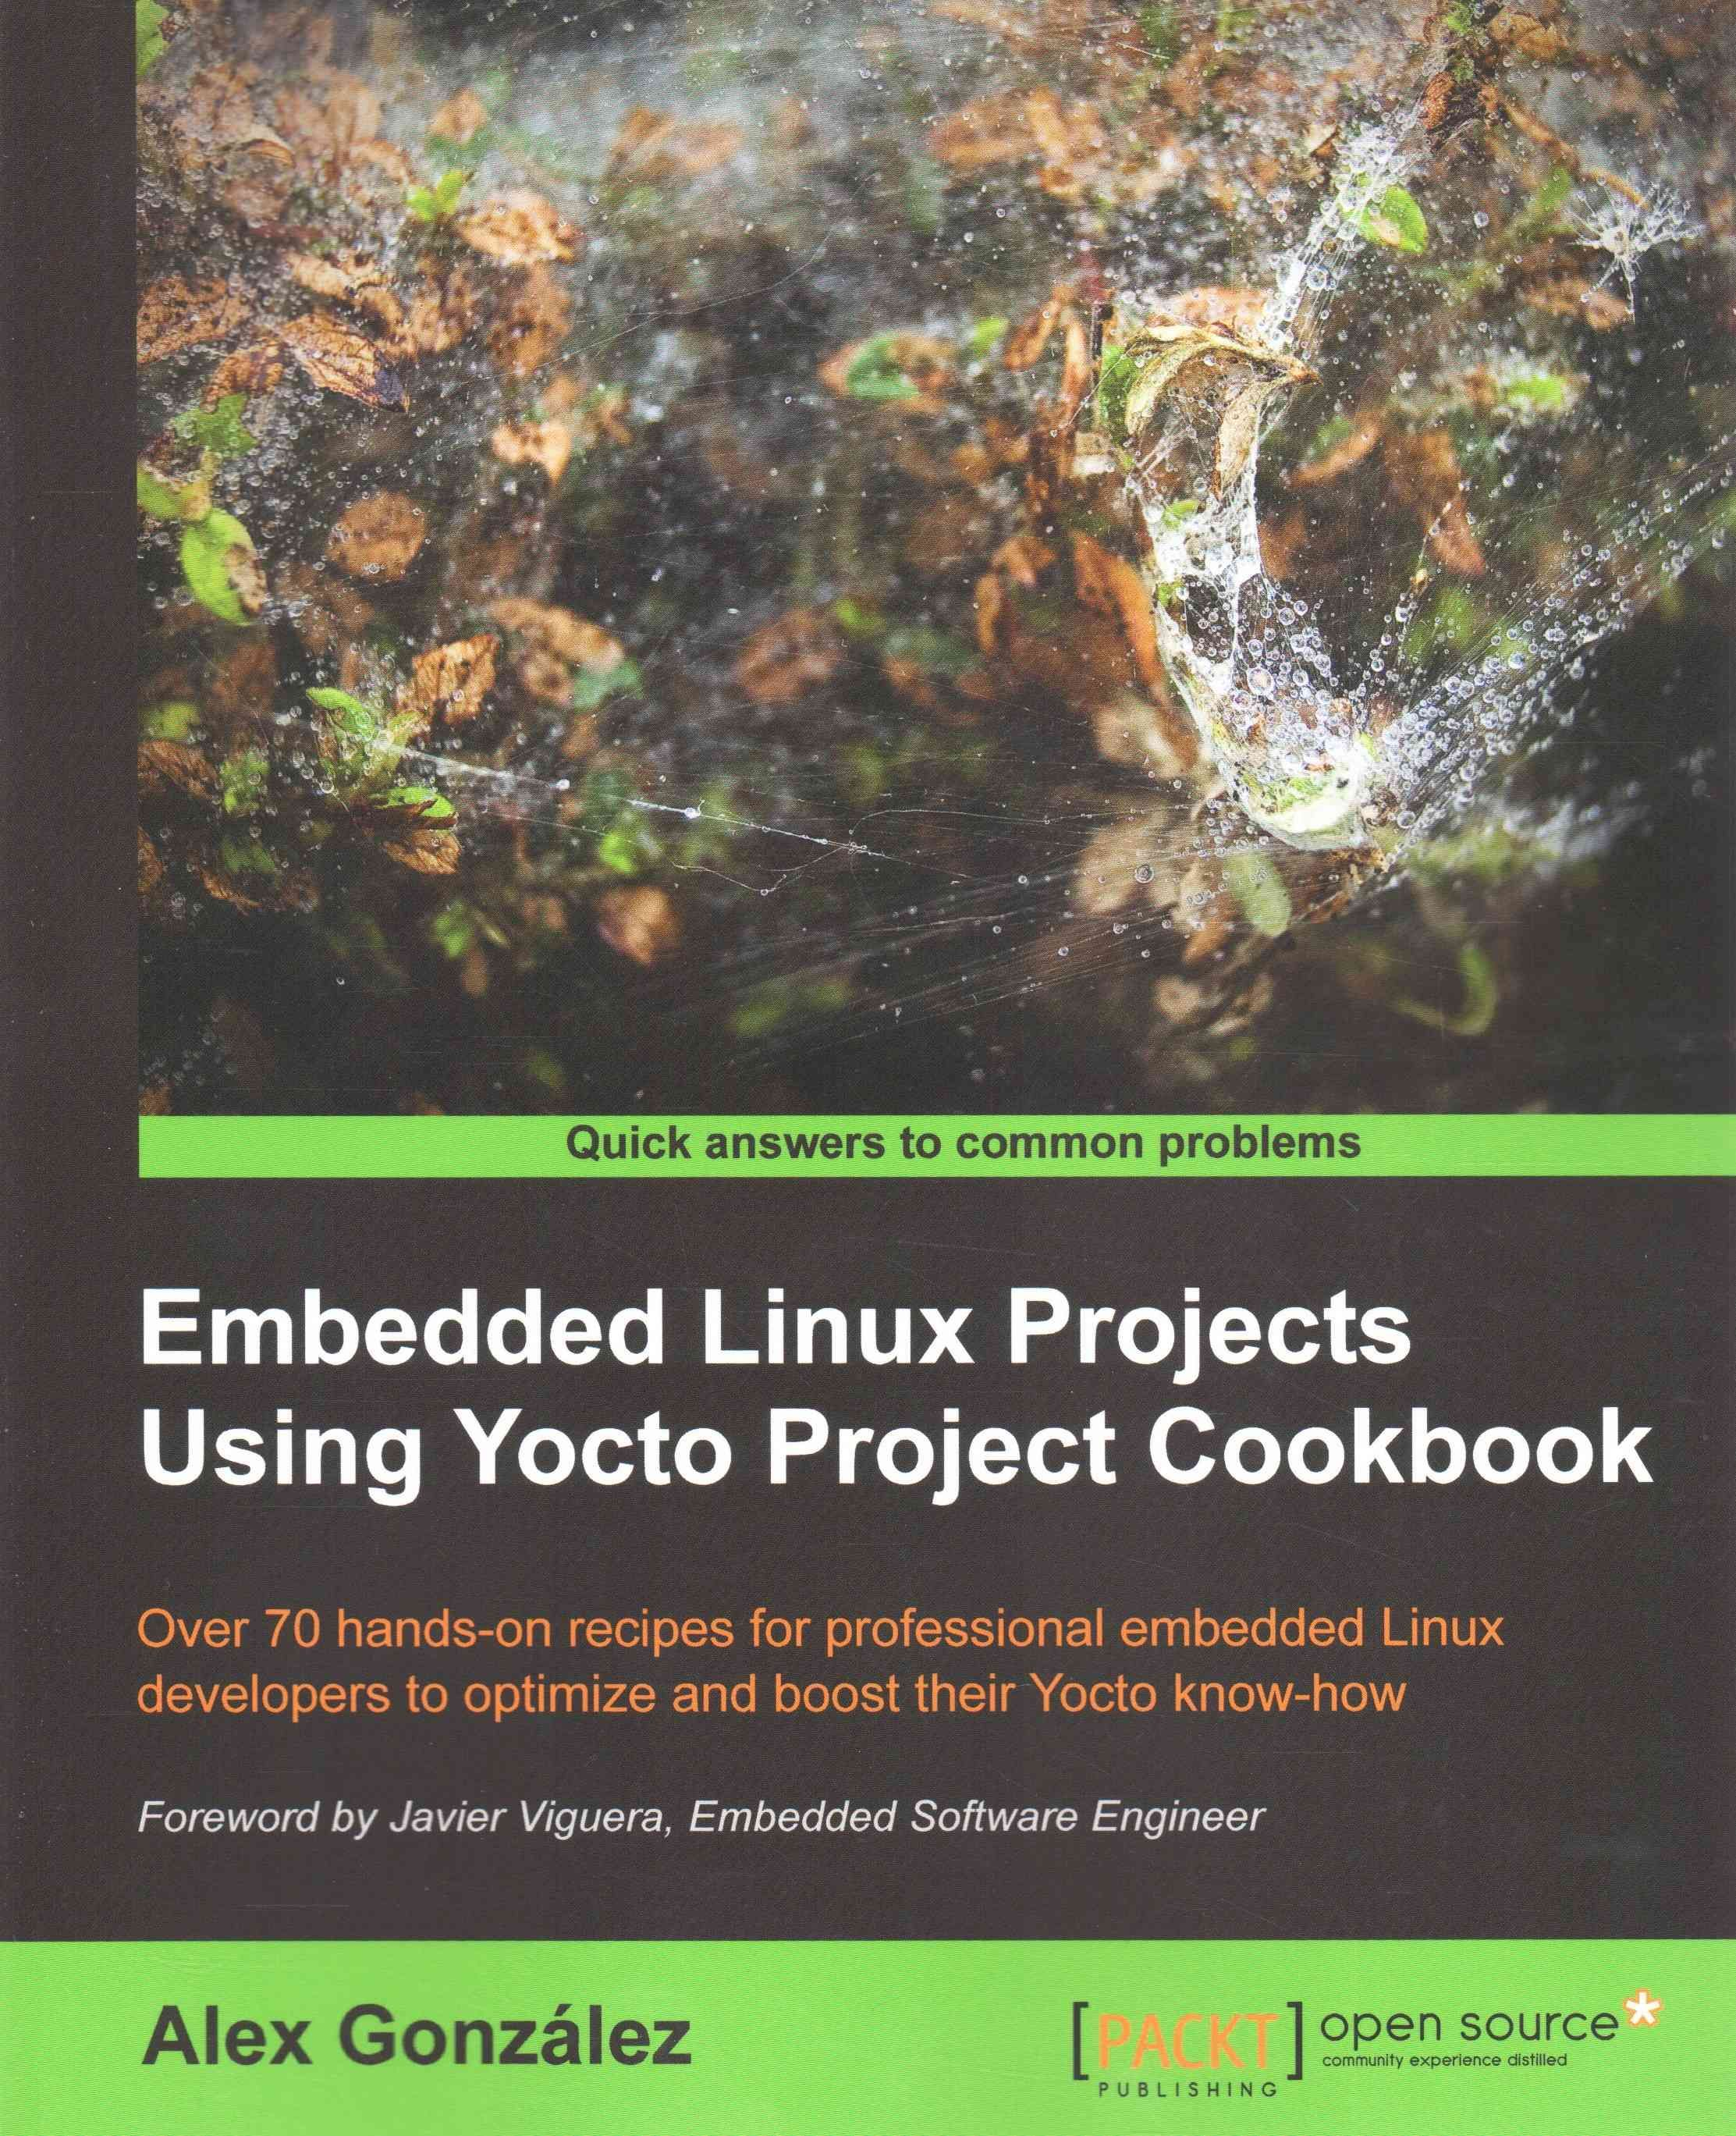 Embedded Linux Projects Using Yocto Project Cookbook: Over